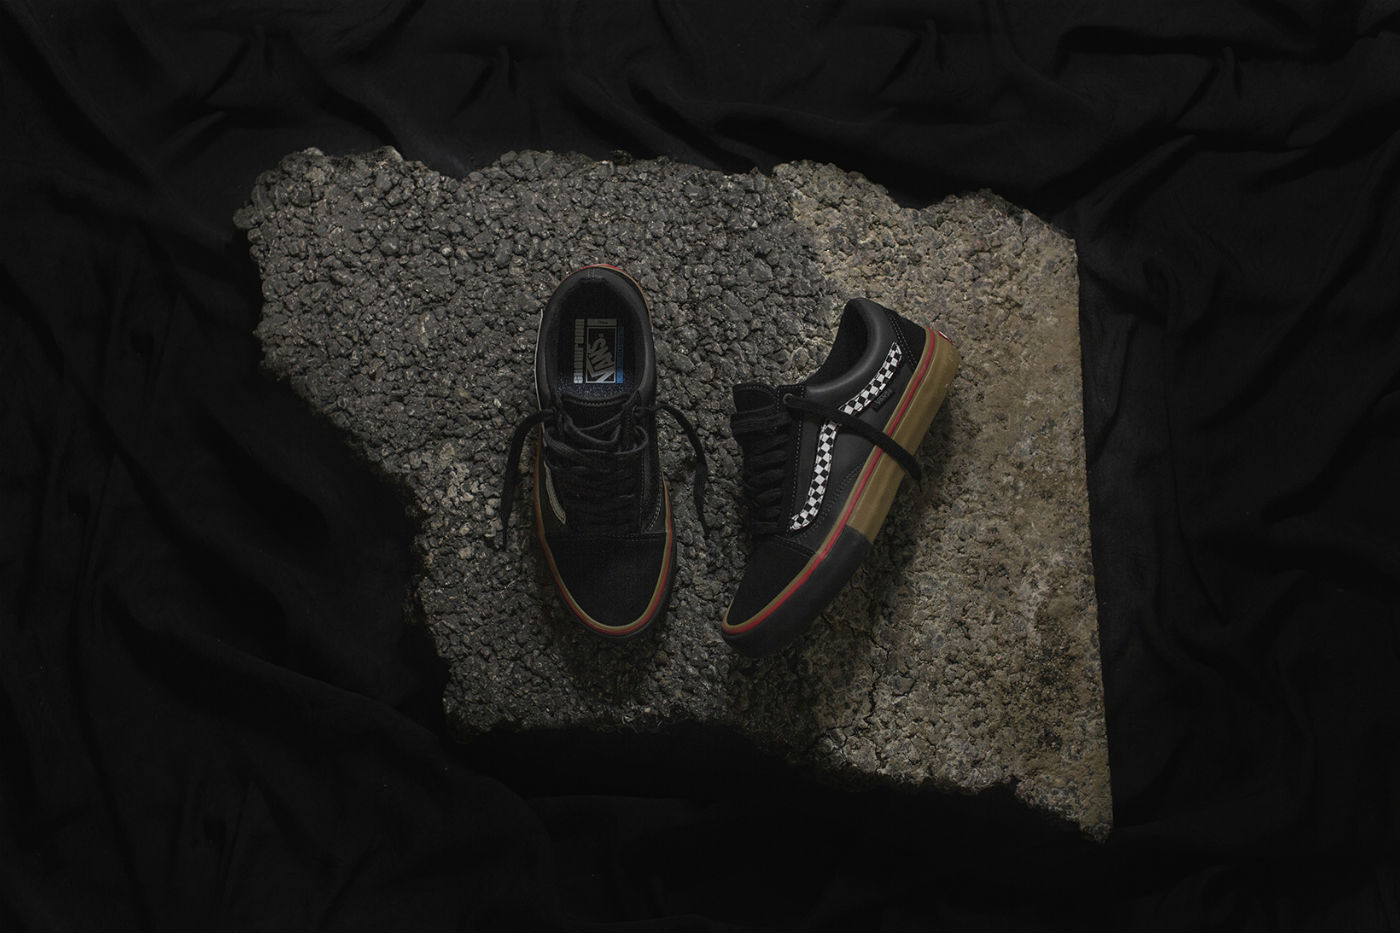 The SHOWROOM x Vans 2130 Collection